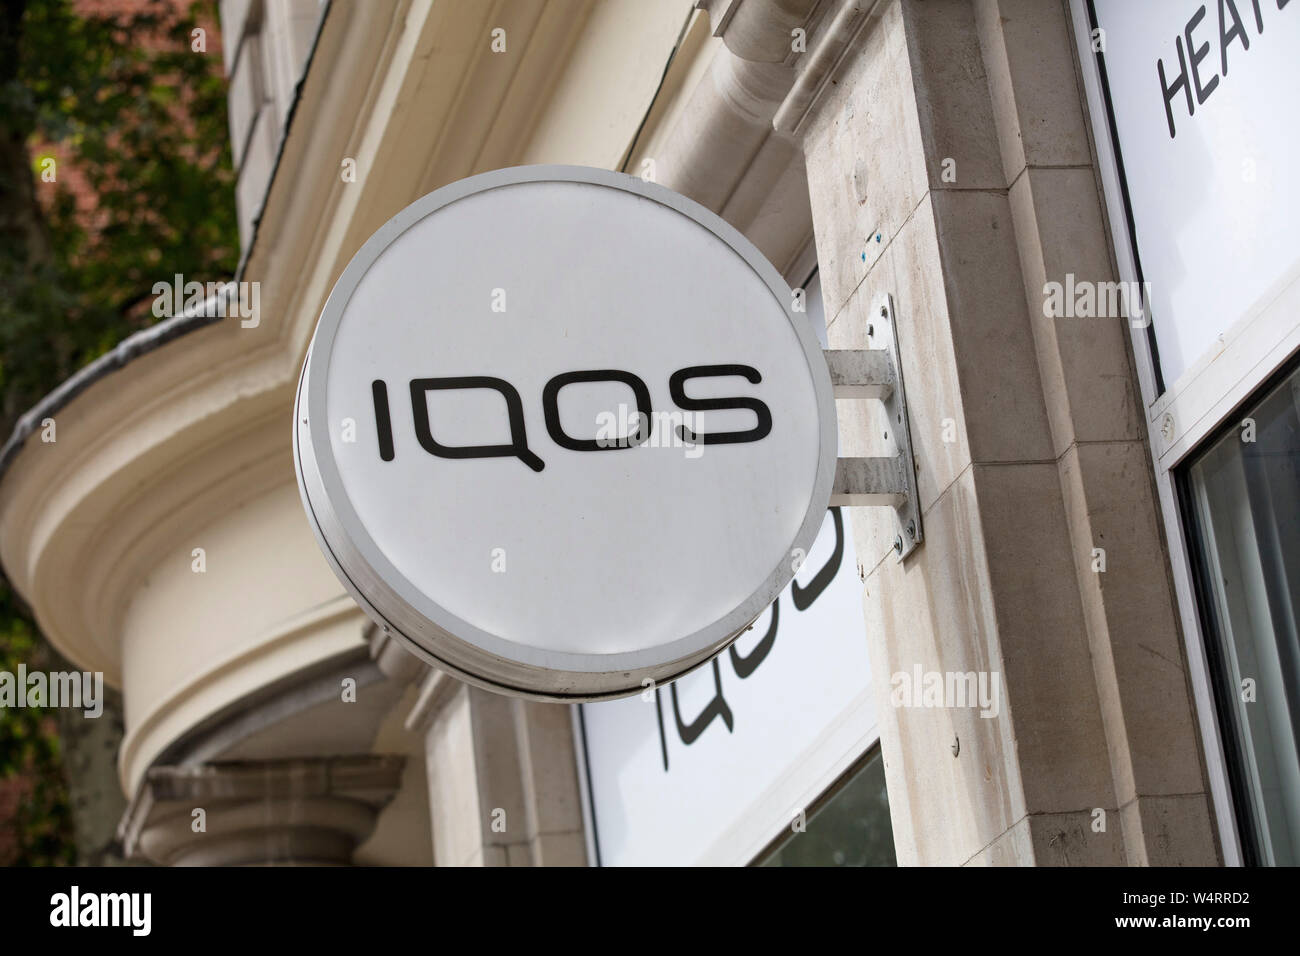 Iqos Stock Photos & Iqos Stock Images - Alamy